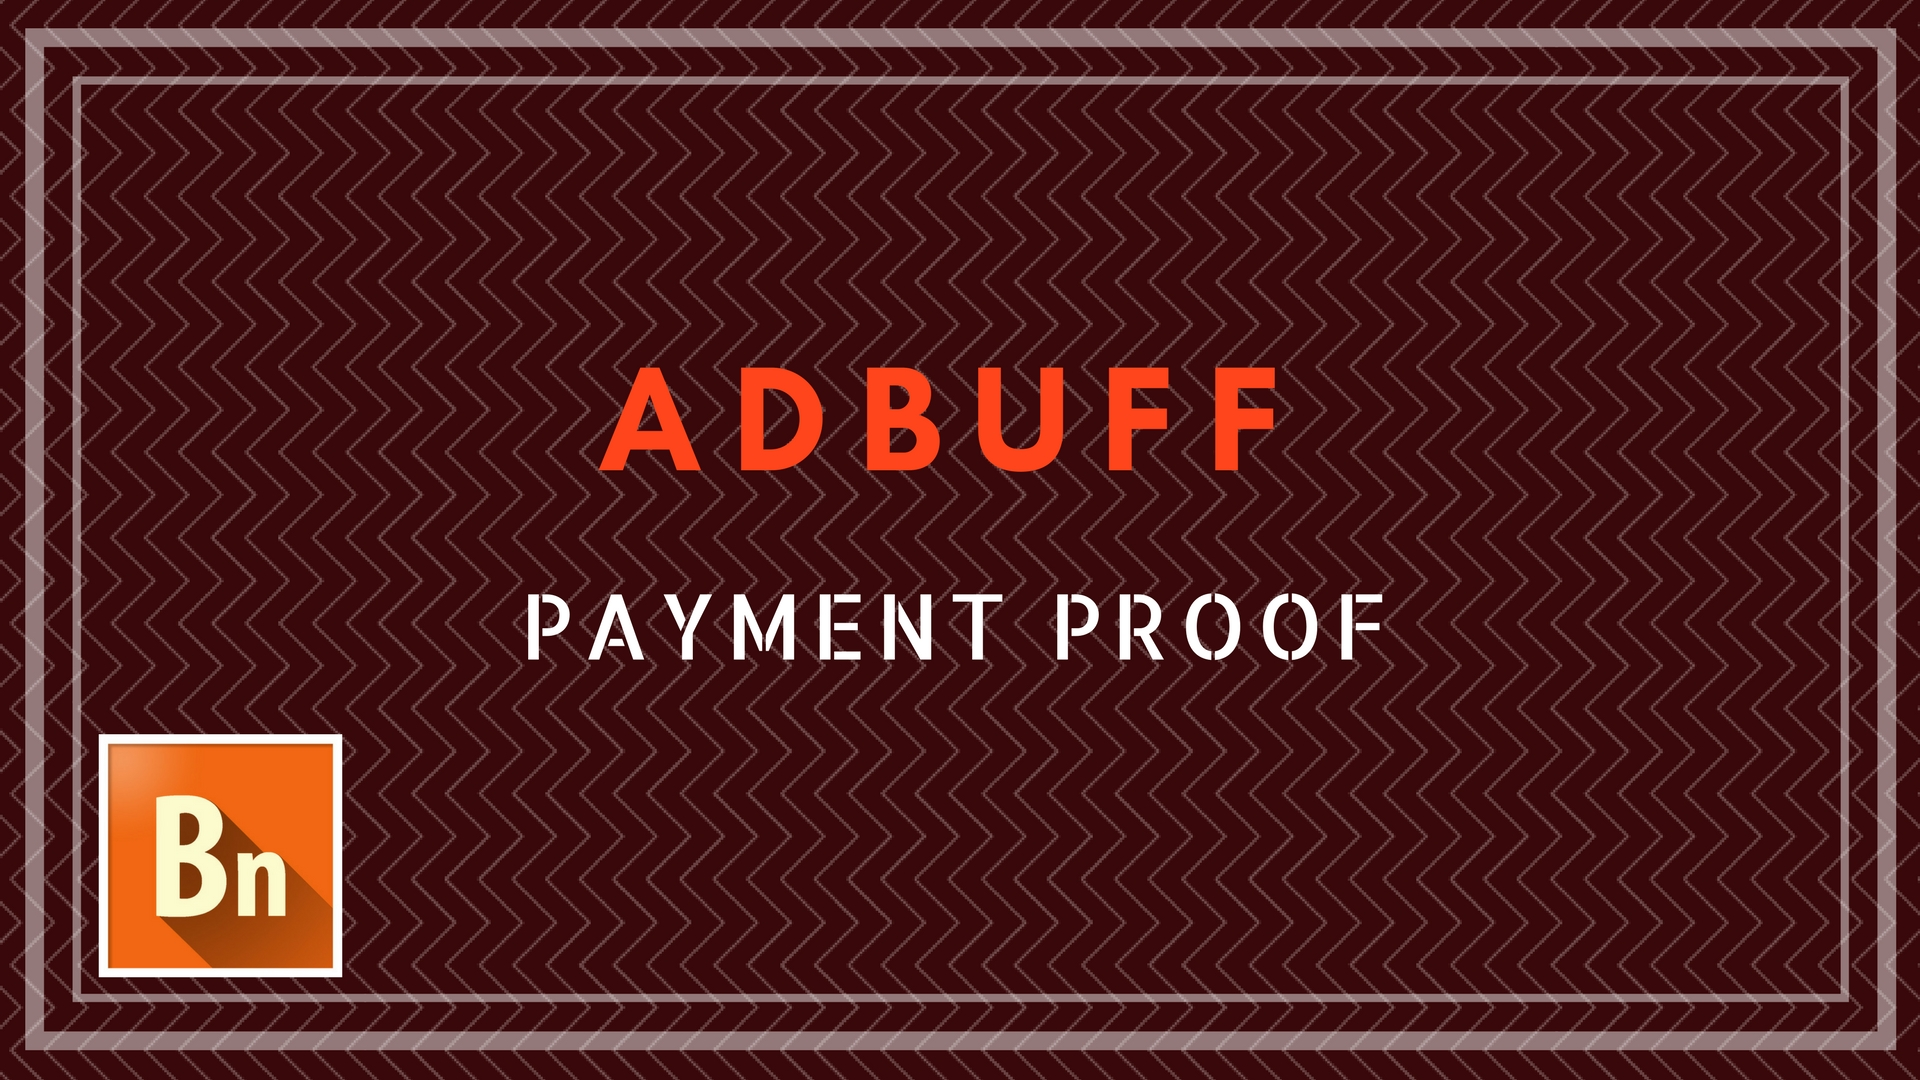 Adbuff Payment Proof for Publishers 2018